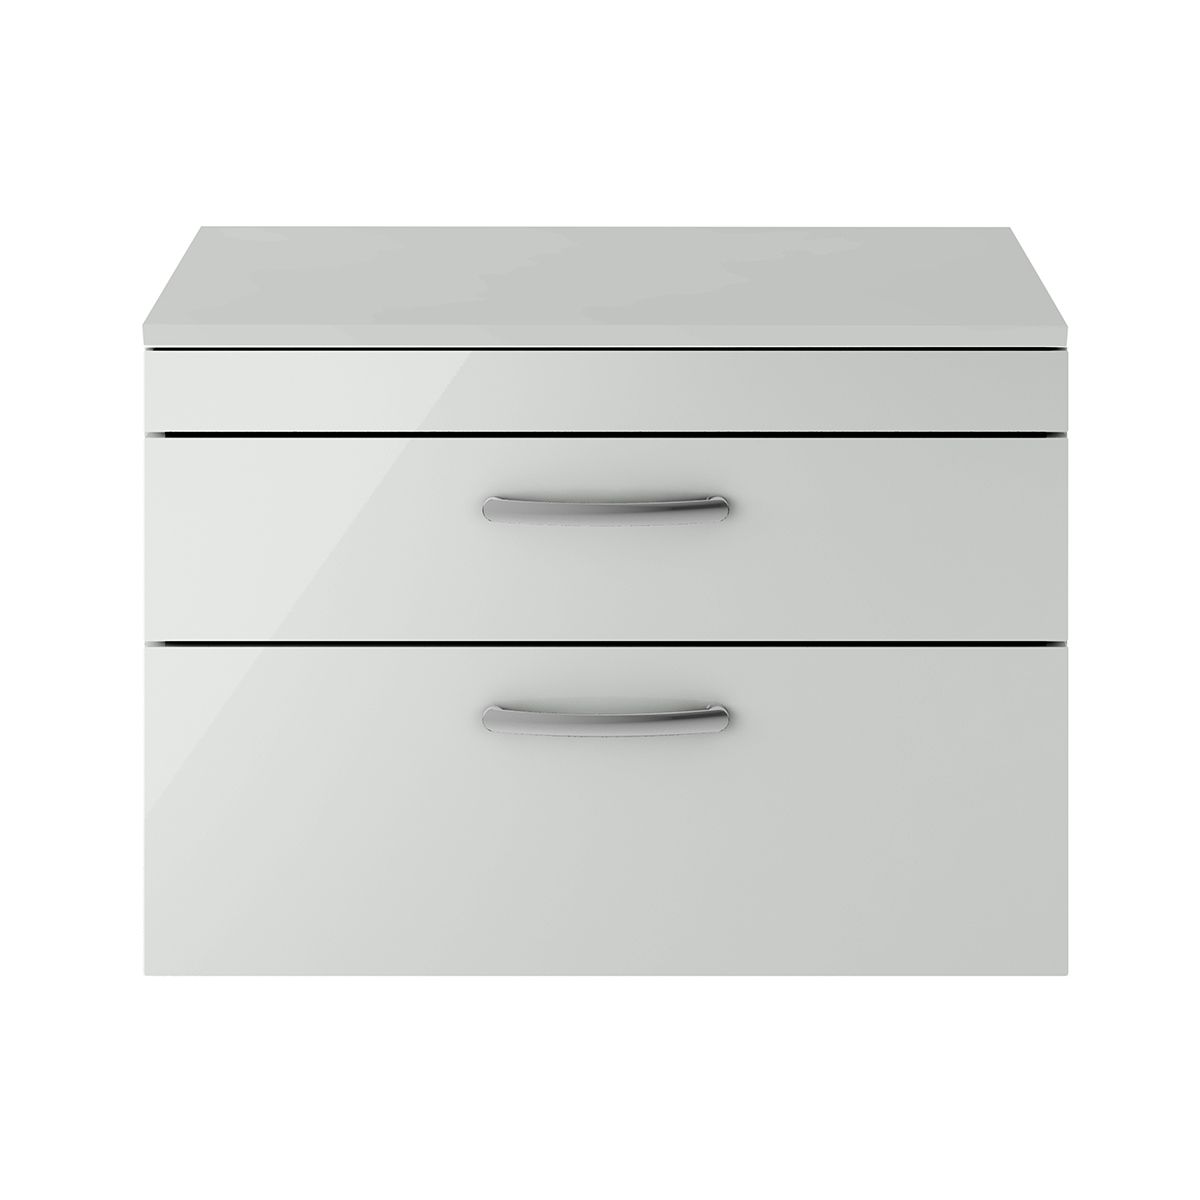 Nuie Athena Gloss Grey Mist 2 Drawer Wall Hung Unit 800mm with Worktop